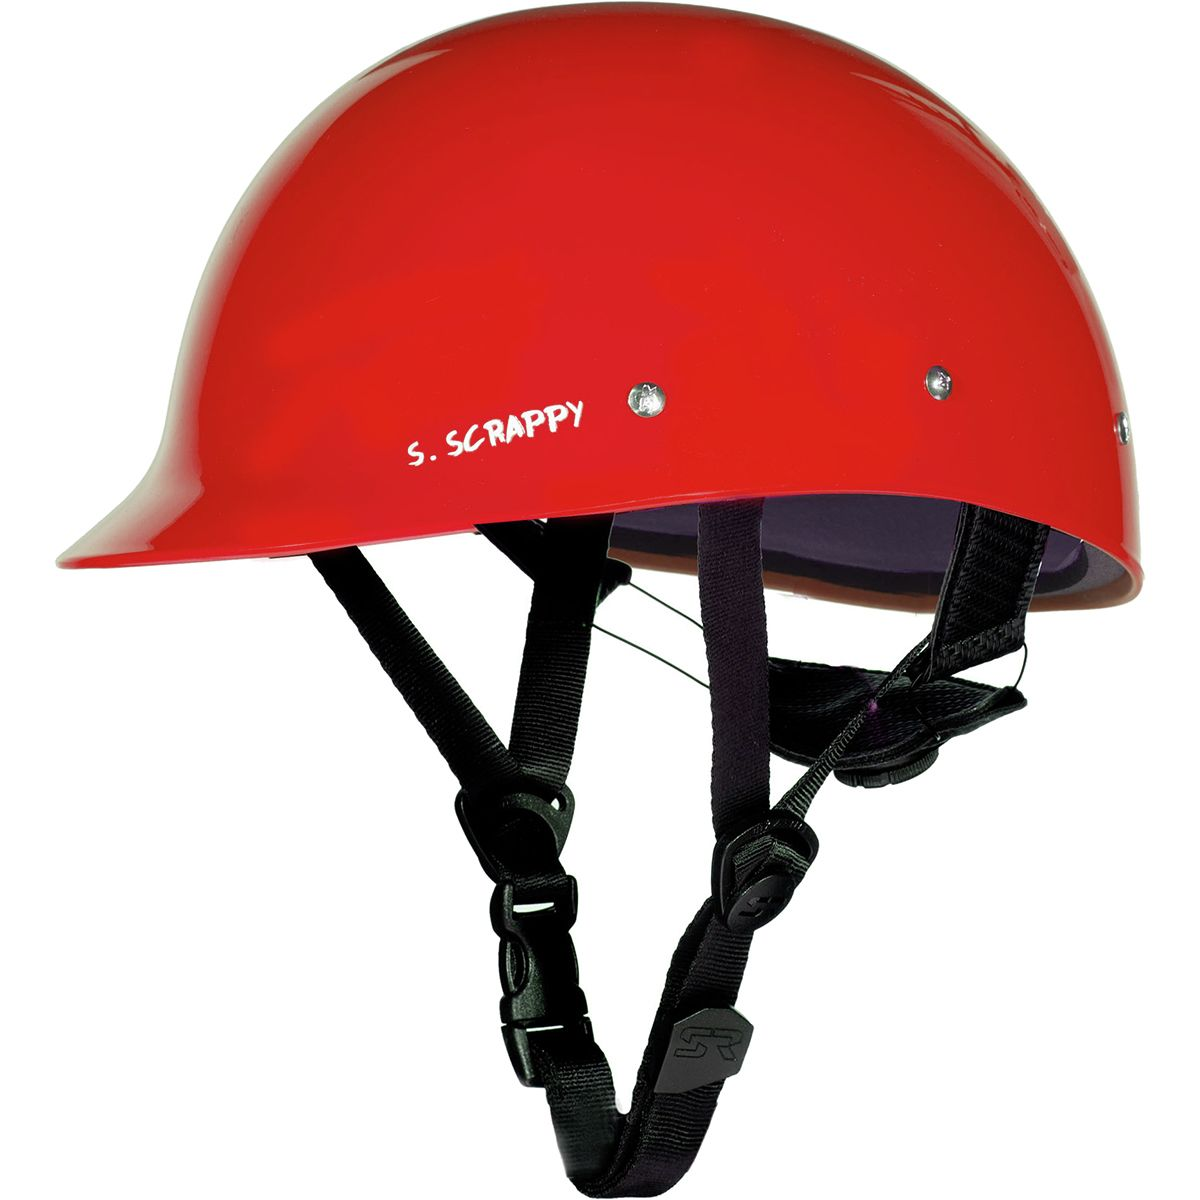 photo: Shred Ready Super Scrappy Helmet paddling helmet